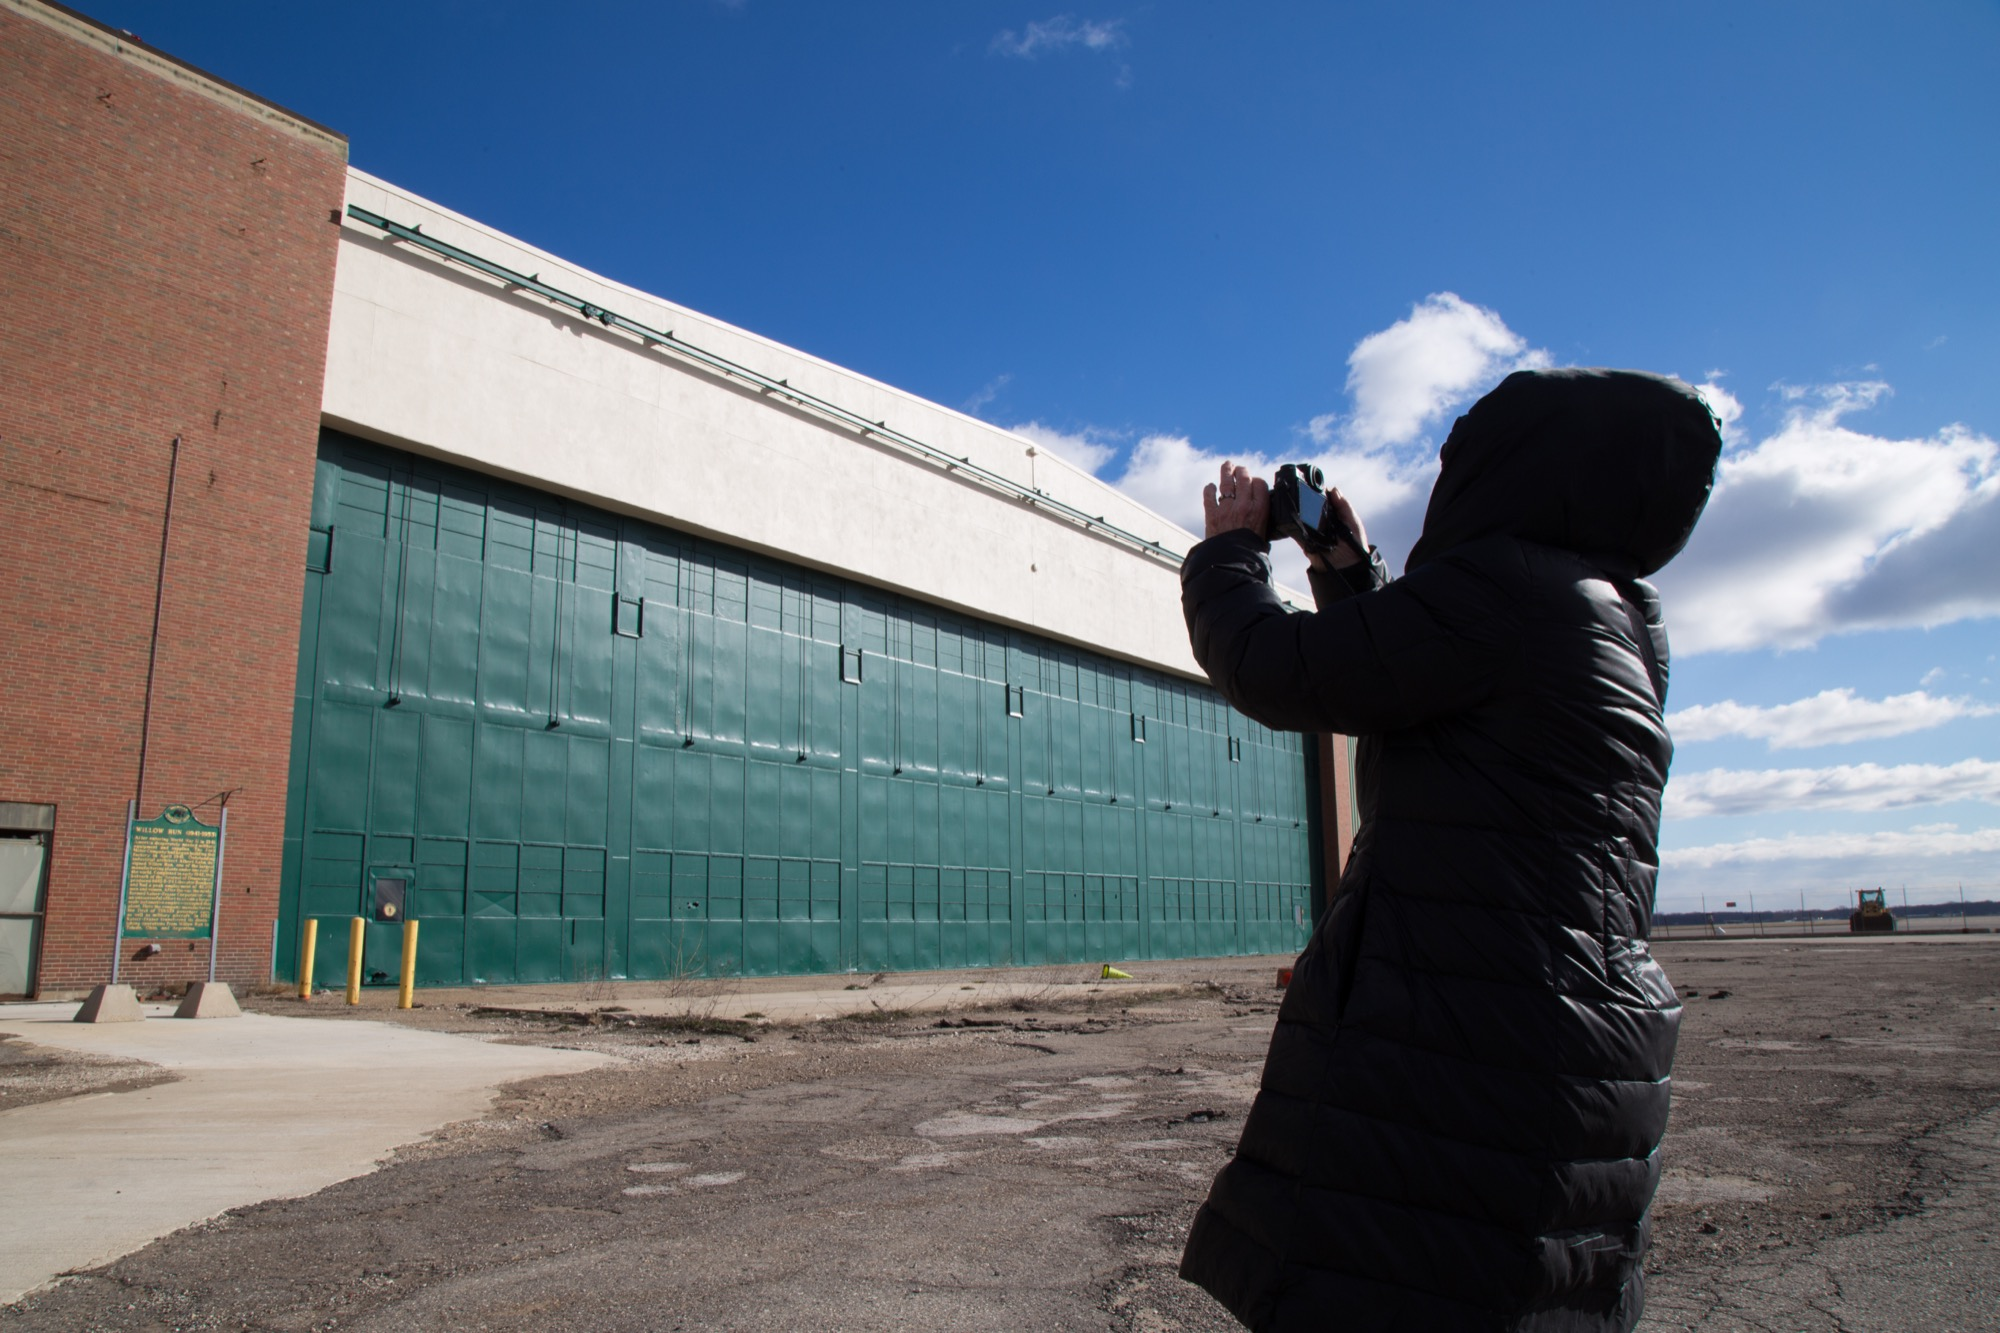 Ruben photographs the exterior of Willow Run.